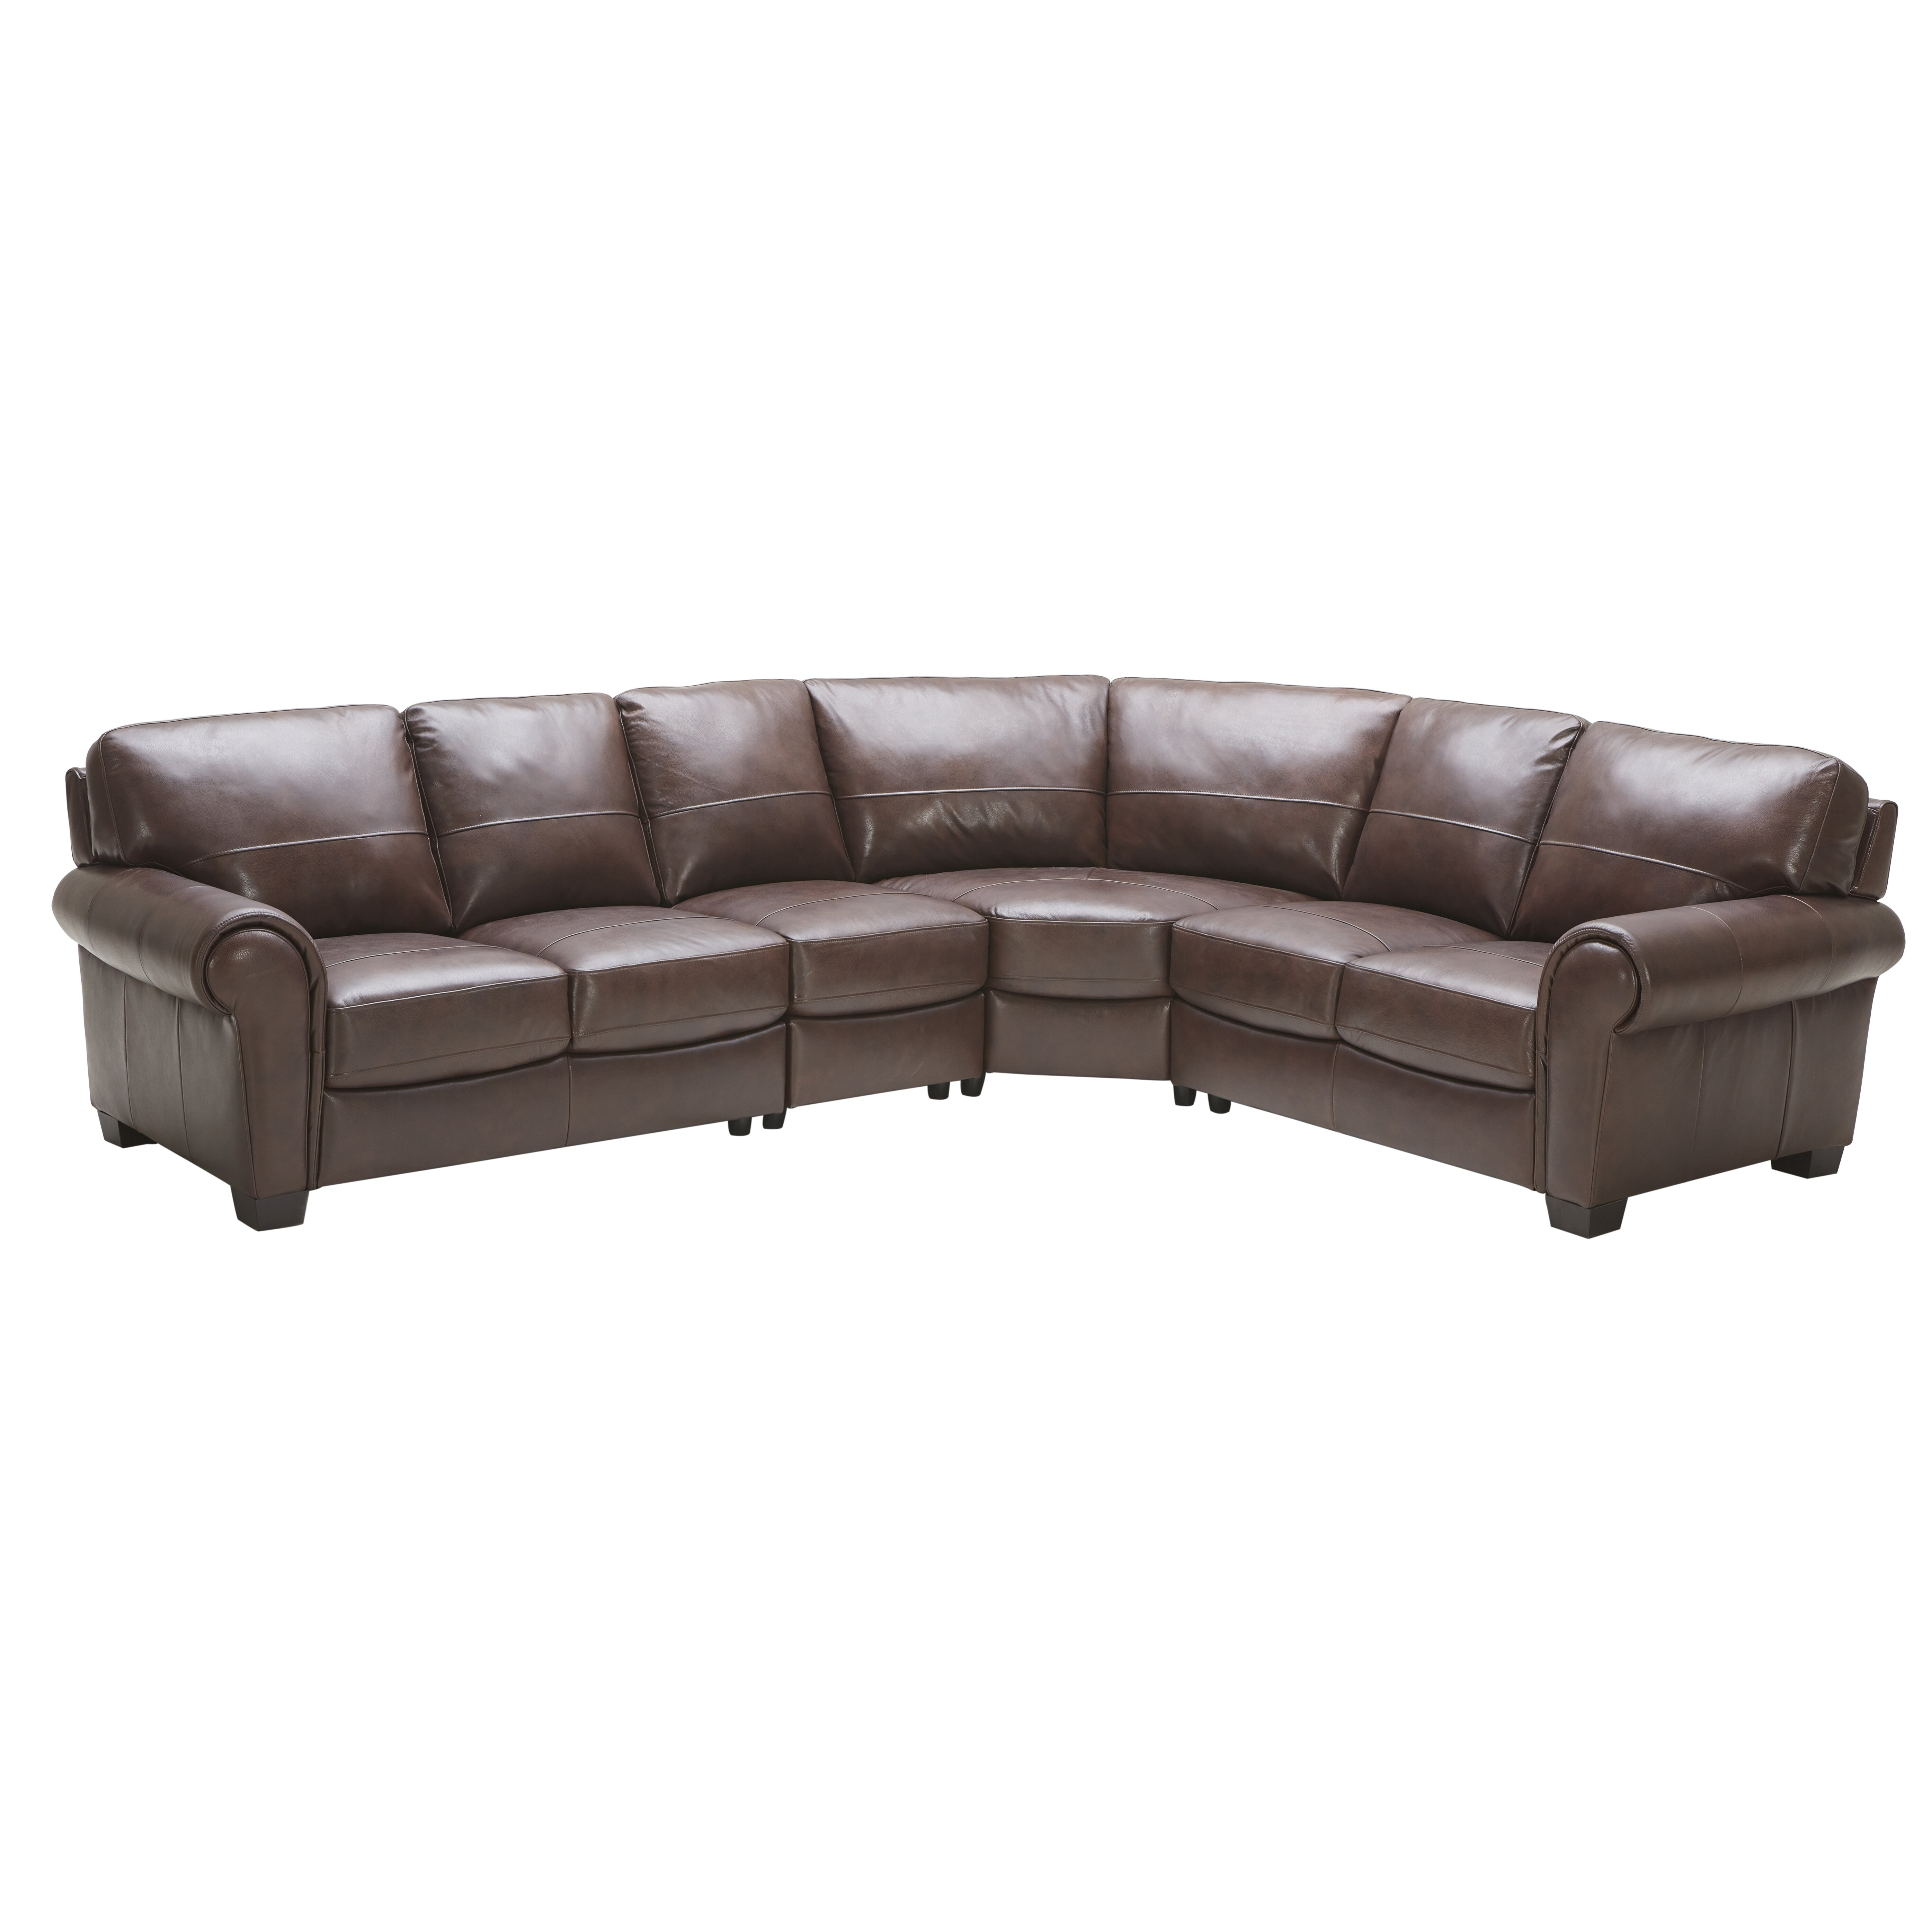 Modular Sectional Leather 28 Images Features Stacey Leather 6 Piece Modular Sectional Sofa